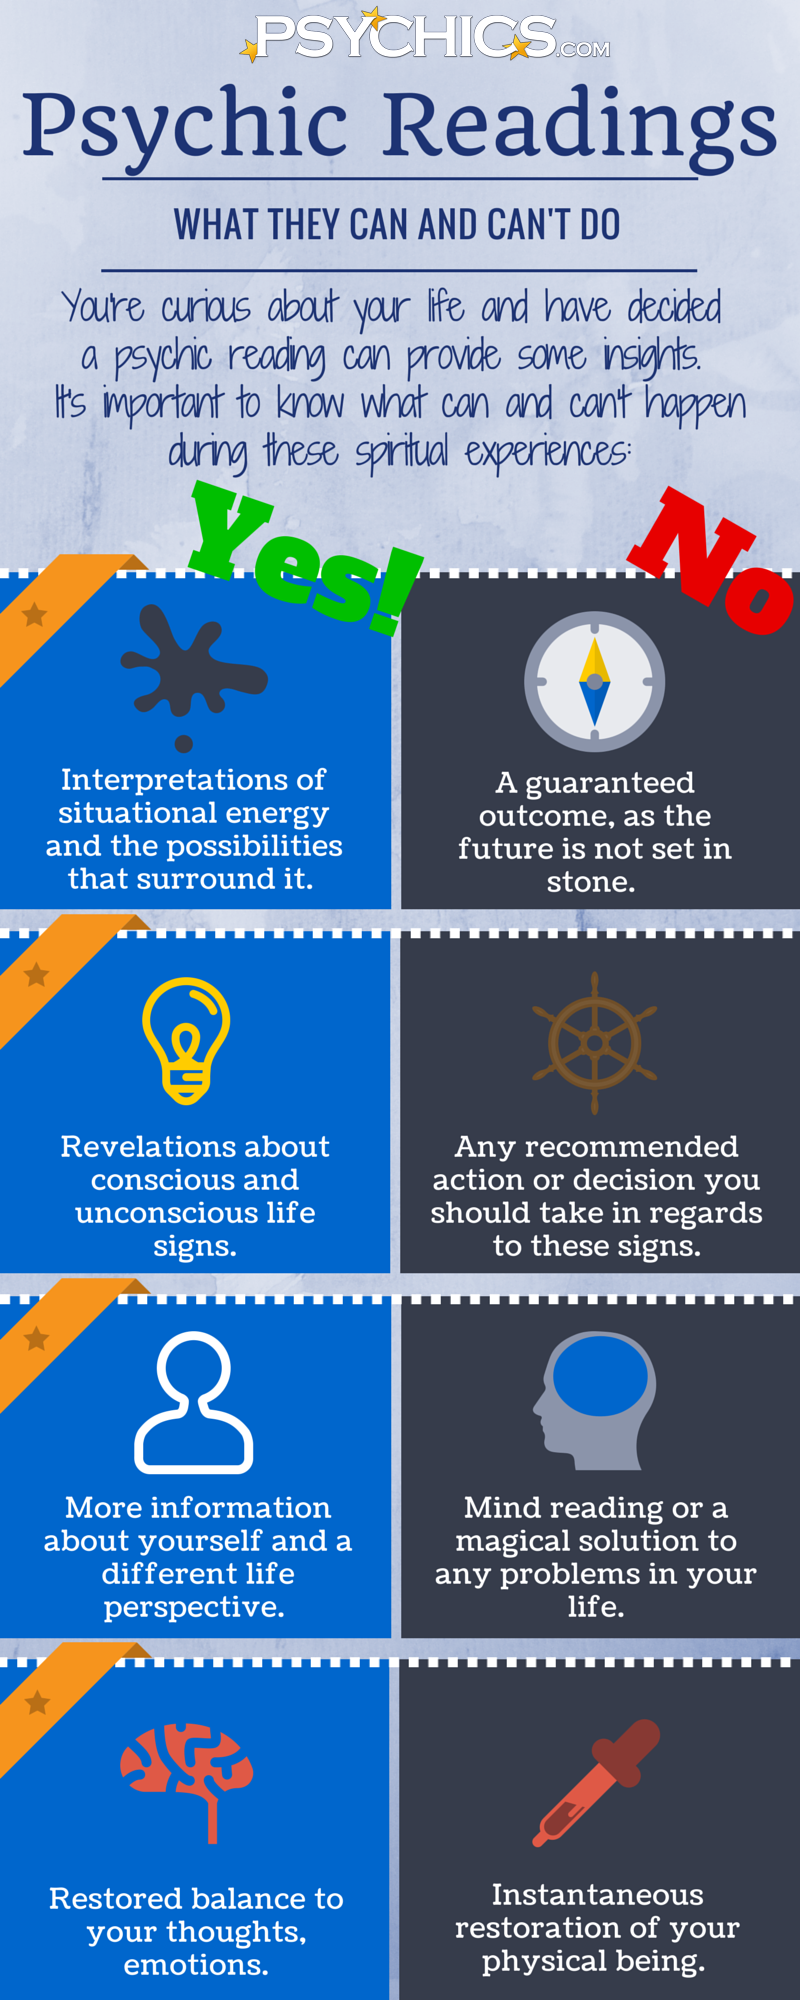 Psychic Reading Infographic: What They Can And Can't Do